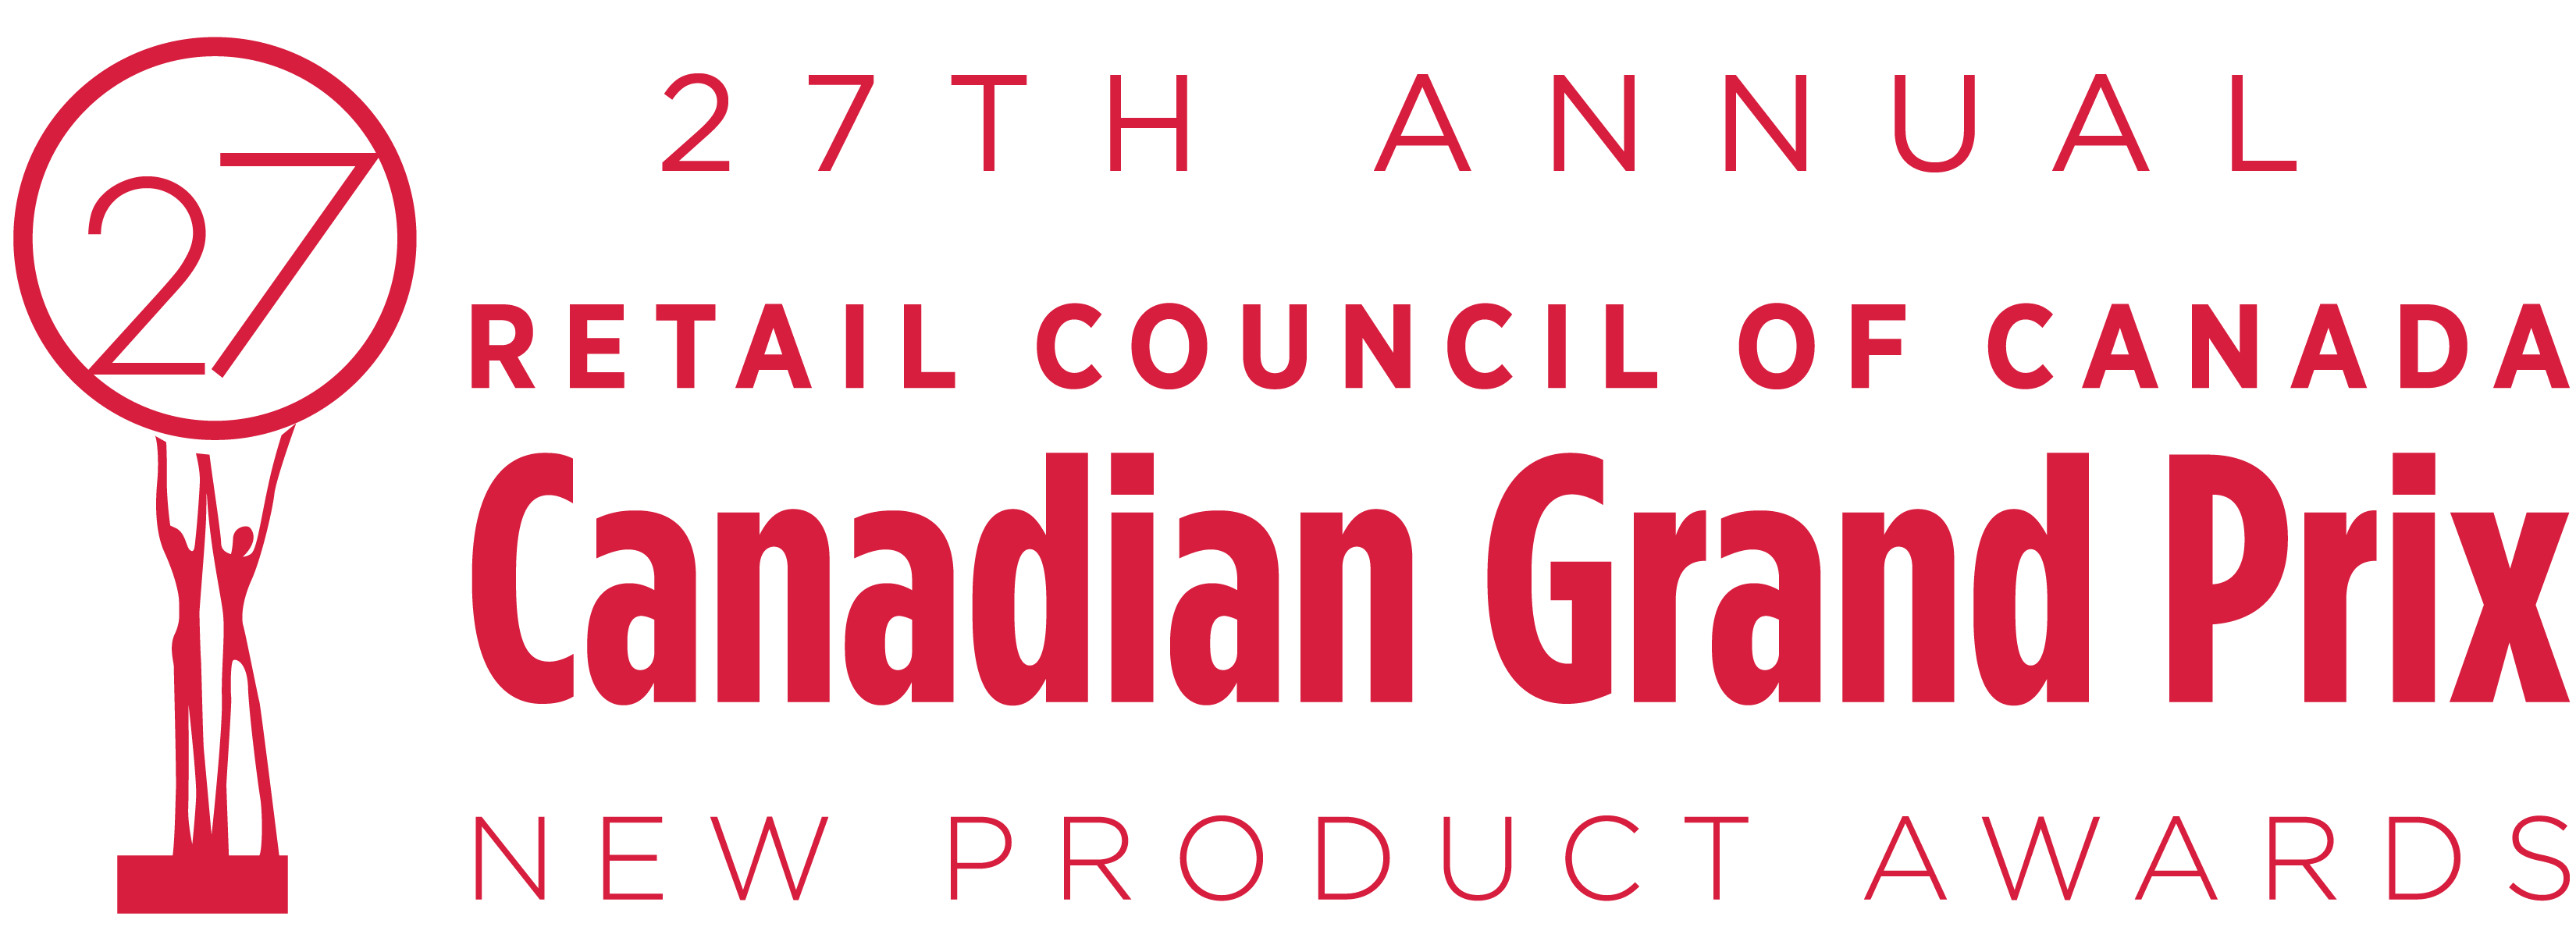 27th Annual Canadian Grand Prix New Product Awards